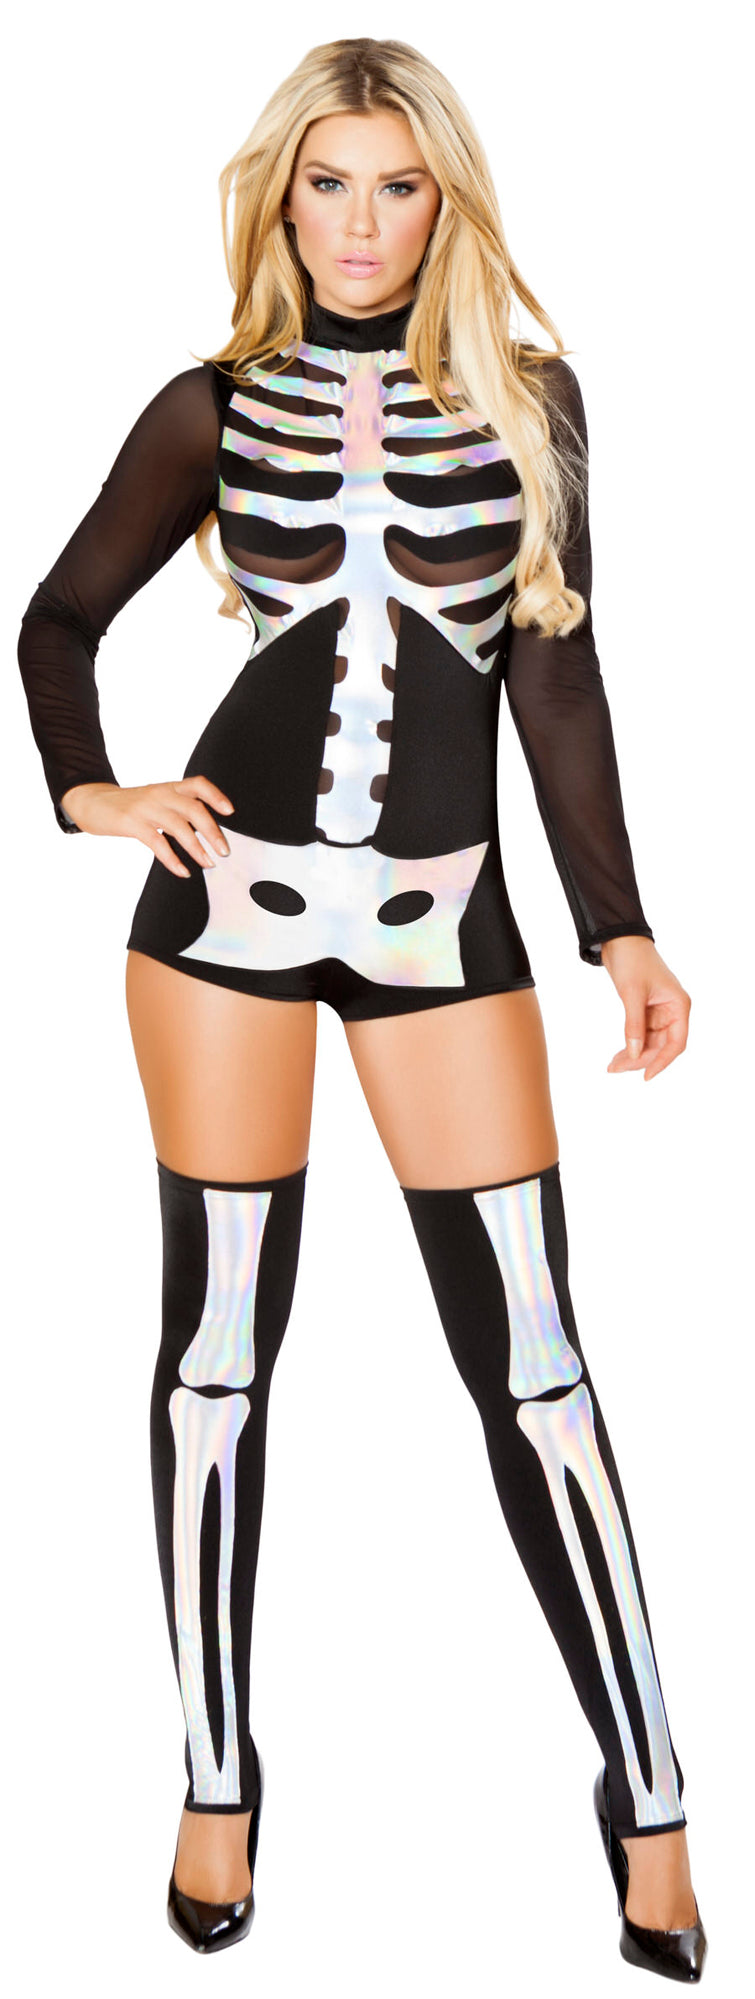 RM-4760 Jackie Skeleton Costume front